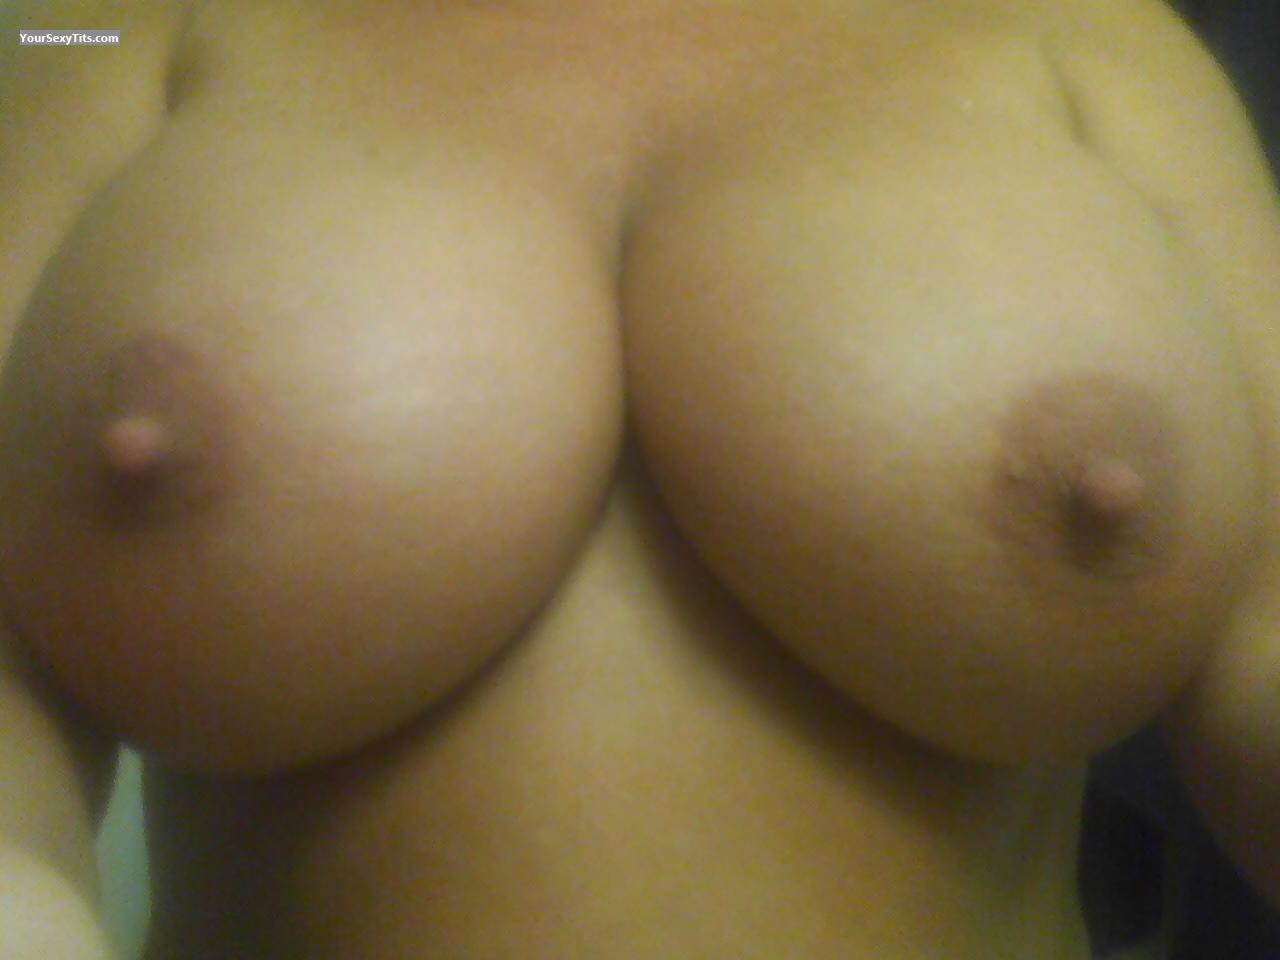 Very big Tits WY. Grown